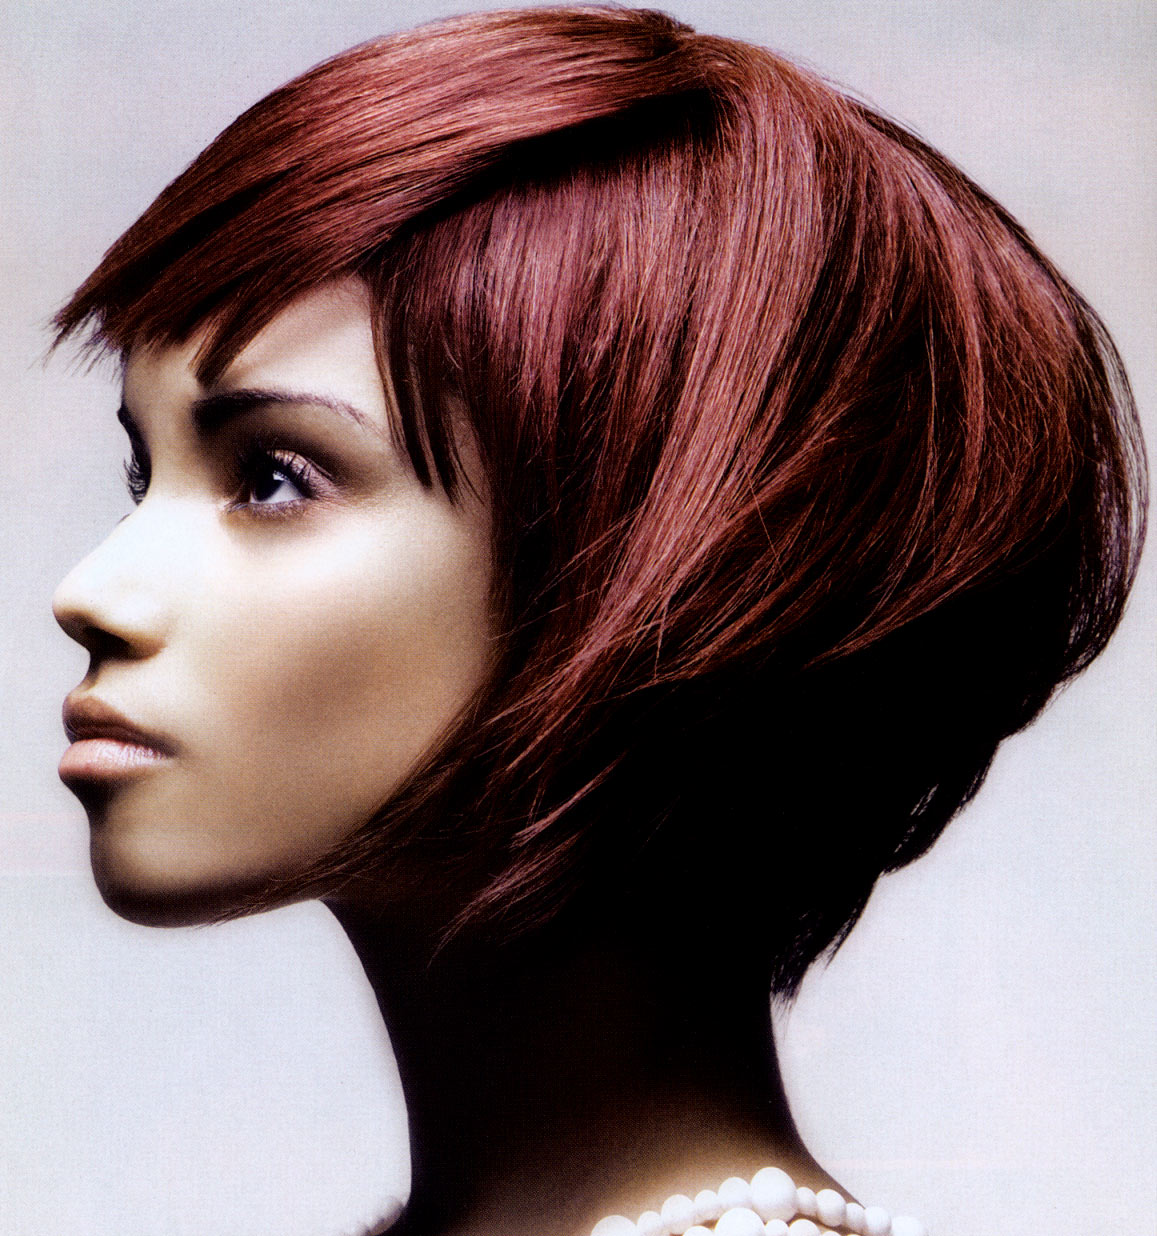 Trendy fryzury - Edwin Johnston. The Cutting Room Hair Design for Naha18, Nanaimo, Canada